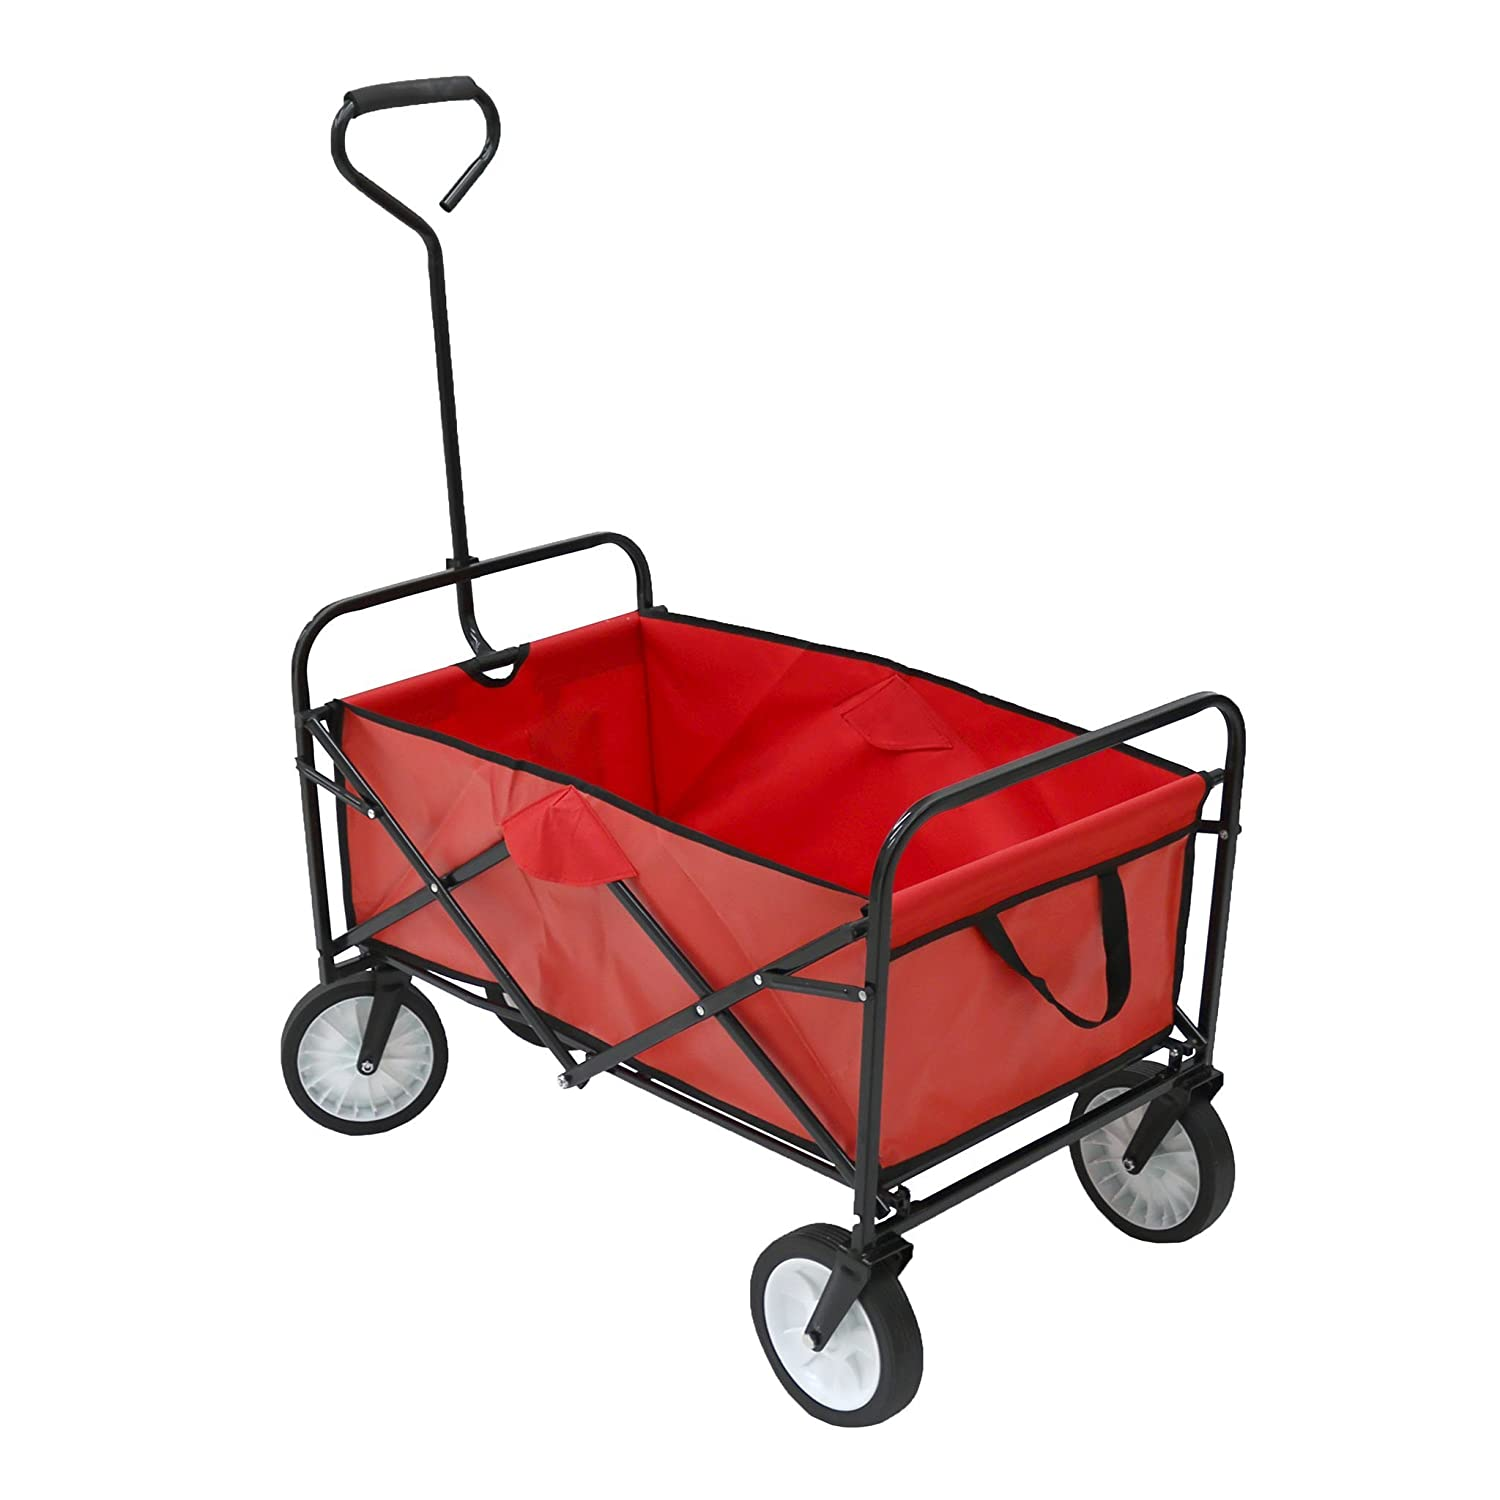 Oypla Heavy Duty Foldable Garden Trolley Folding Cart Wagon Truck Wheelbarrow 3603OYP